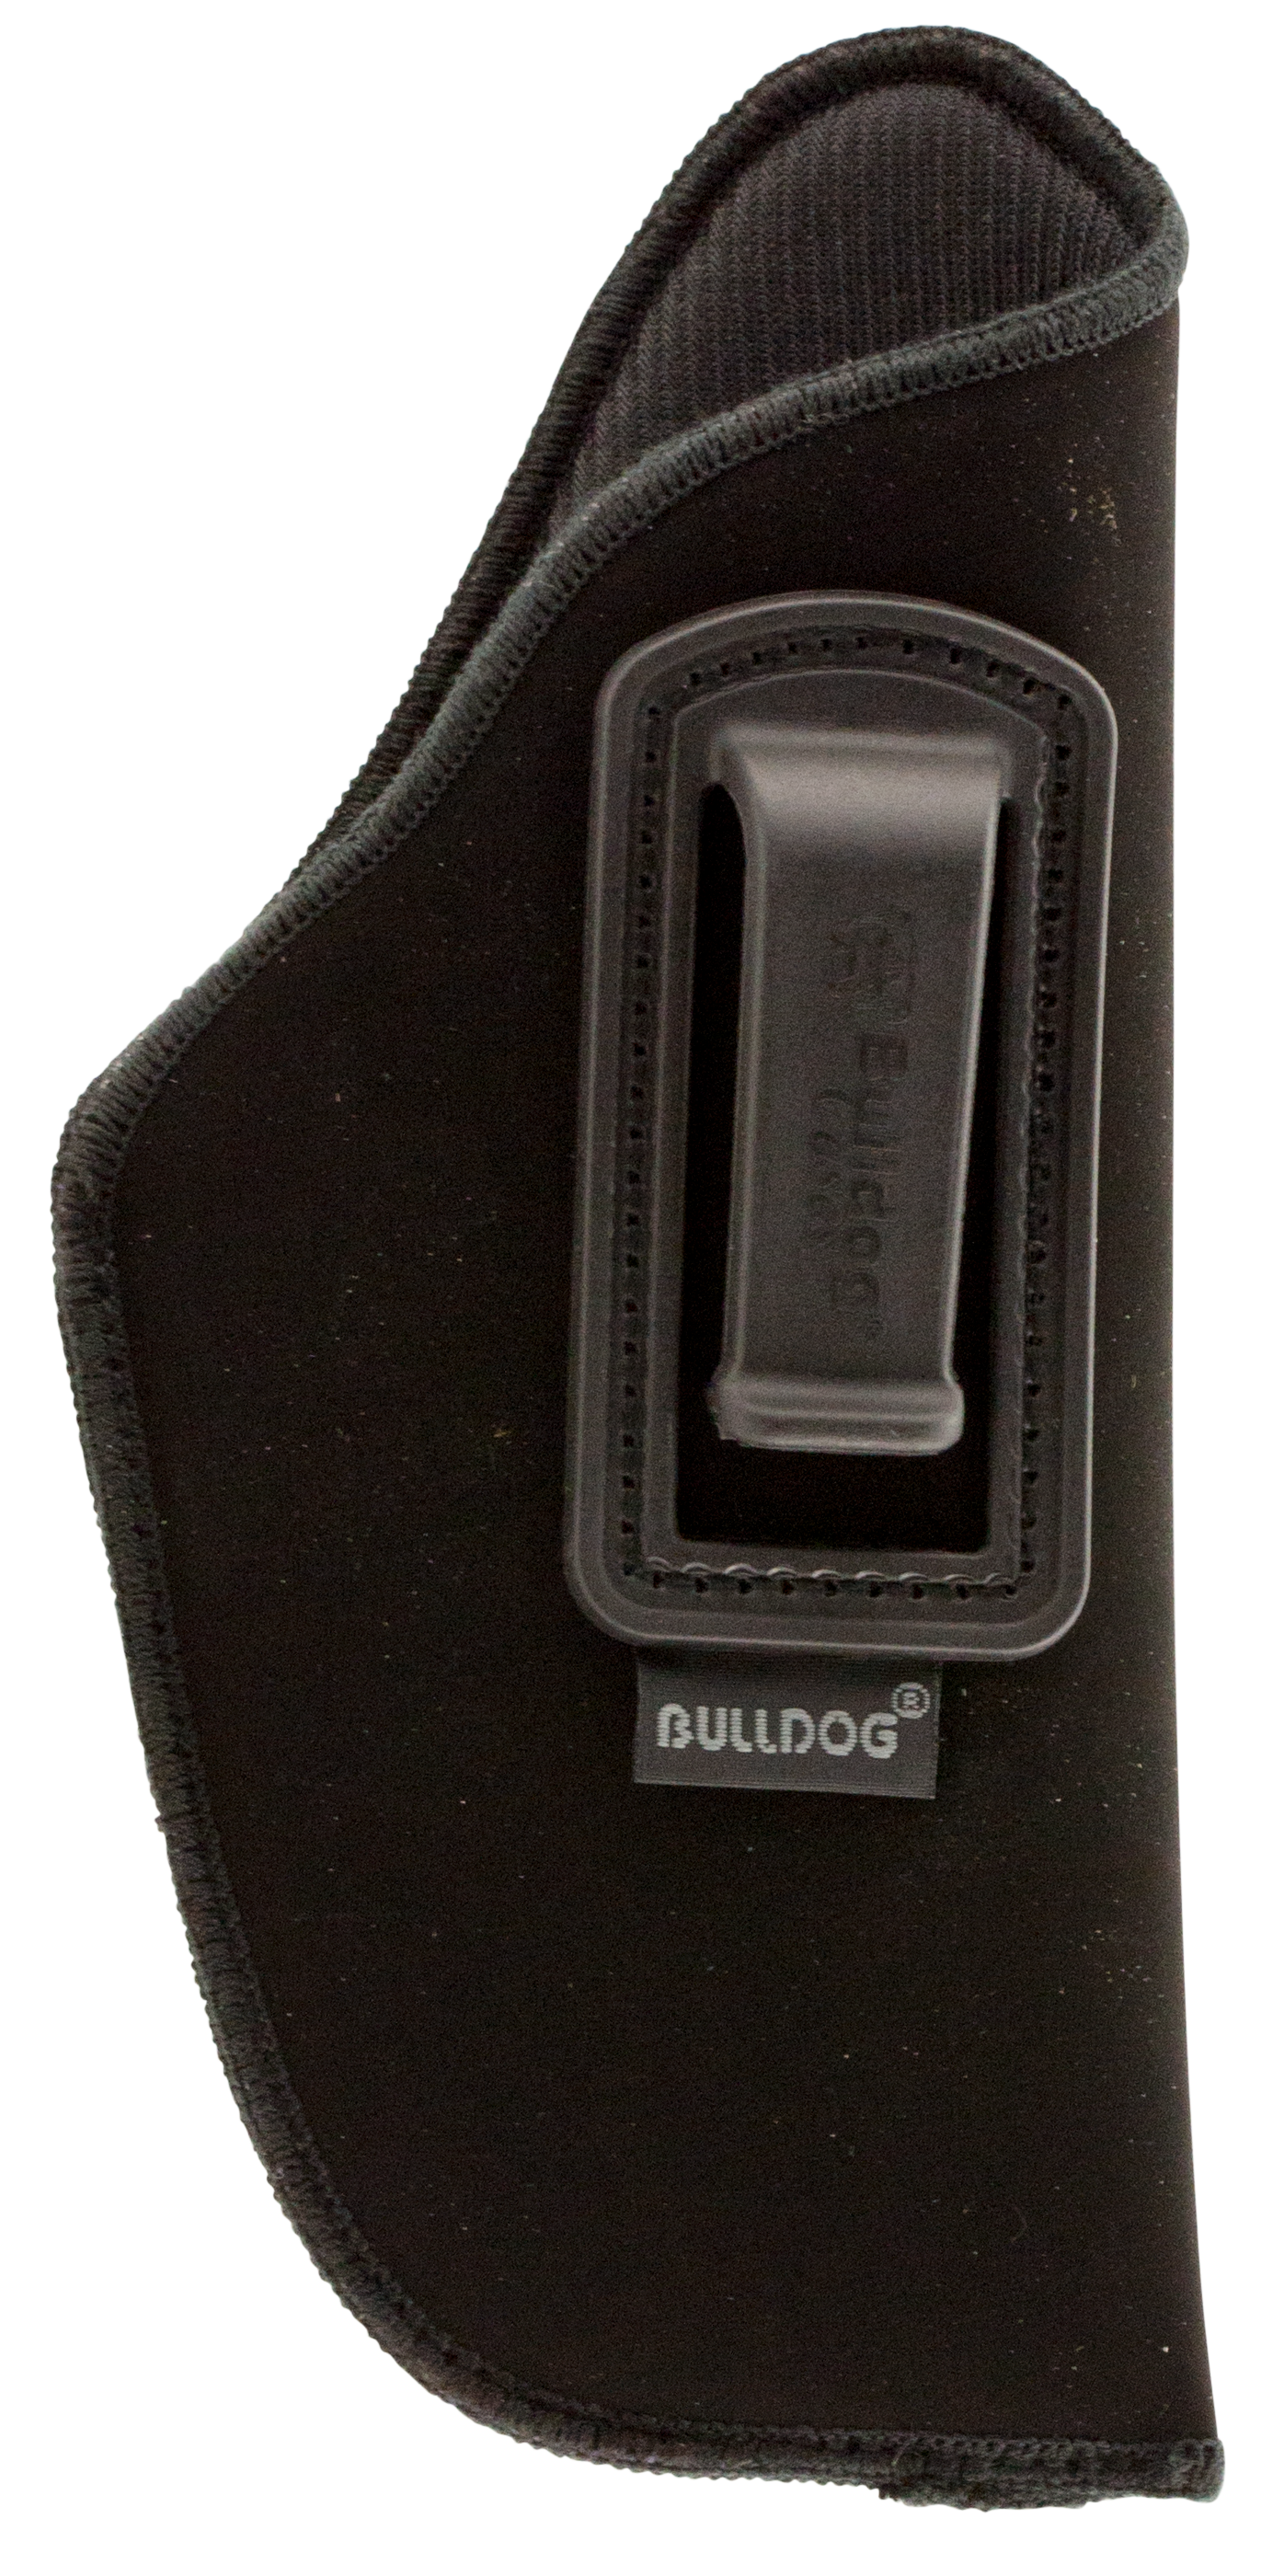 Bulldog DIP-7 Deluxe Inside The Waistband Fits Glock 19 Synthetic Suede Blk